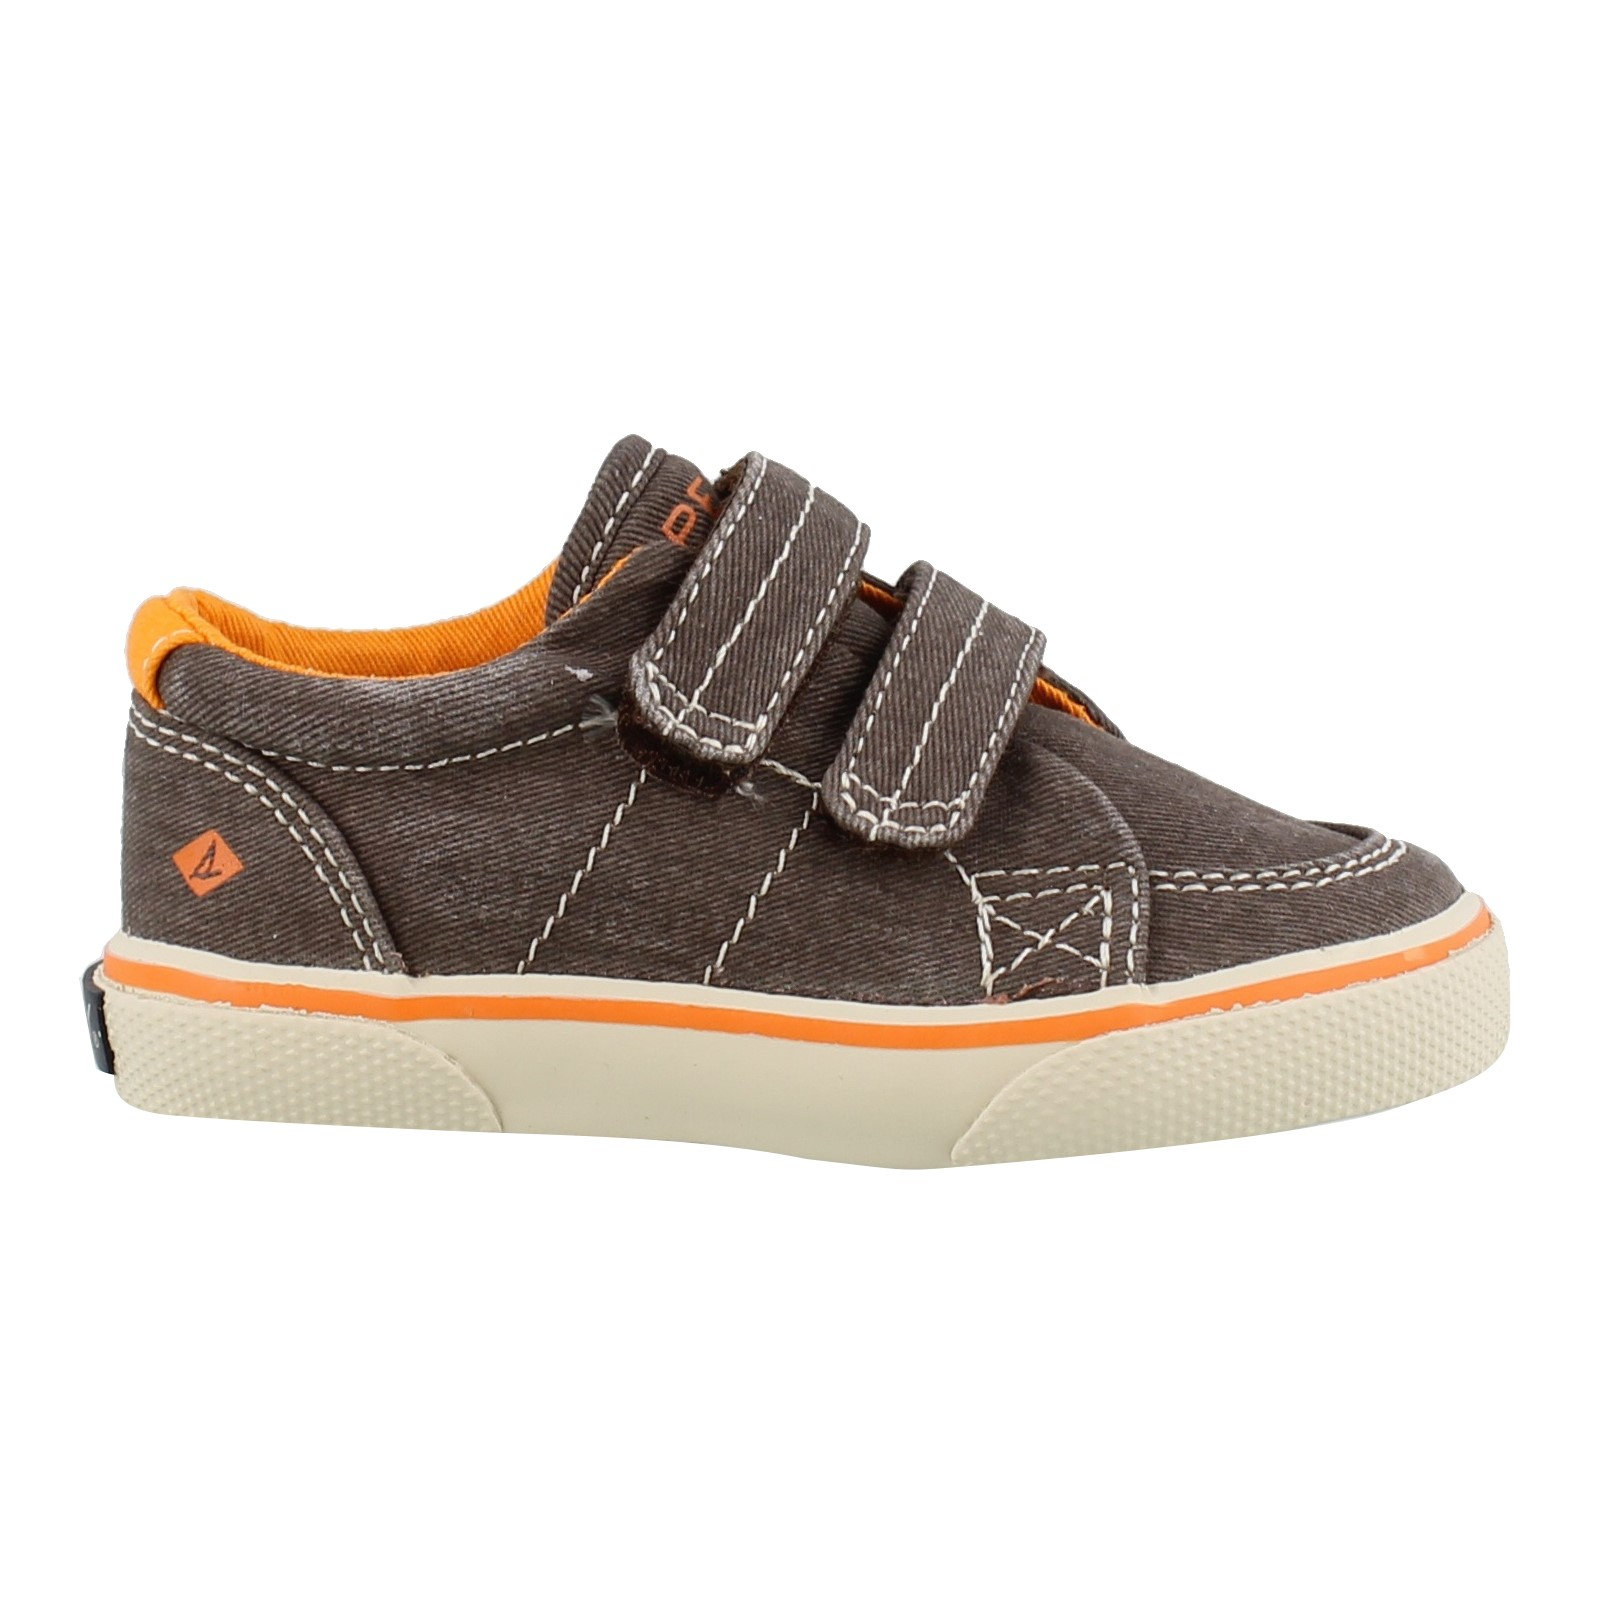 Boy's Sperry Topsider, Halyard Boat Shoe